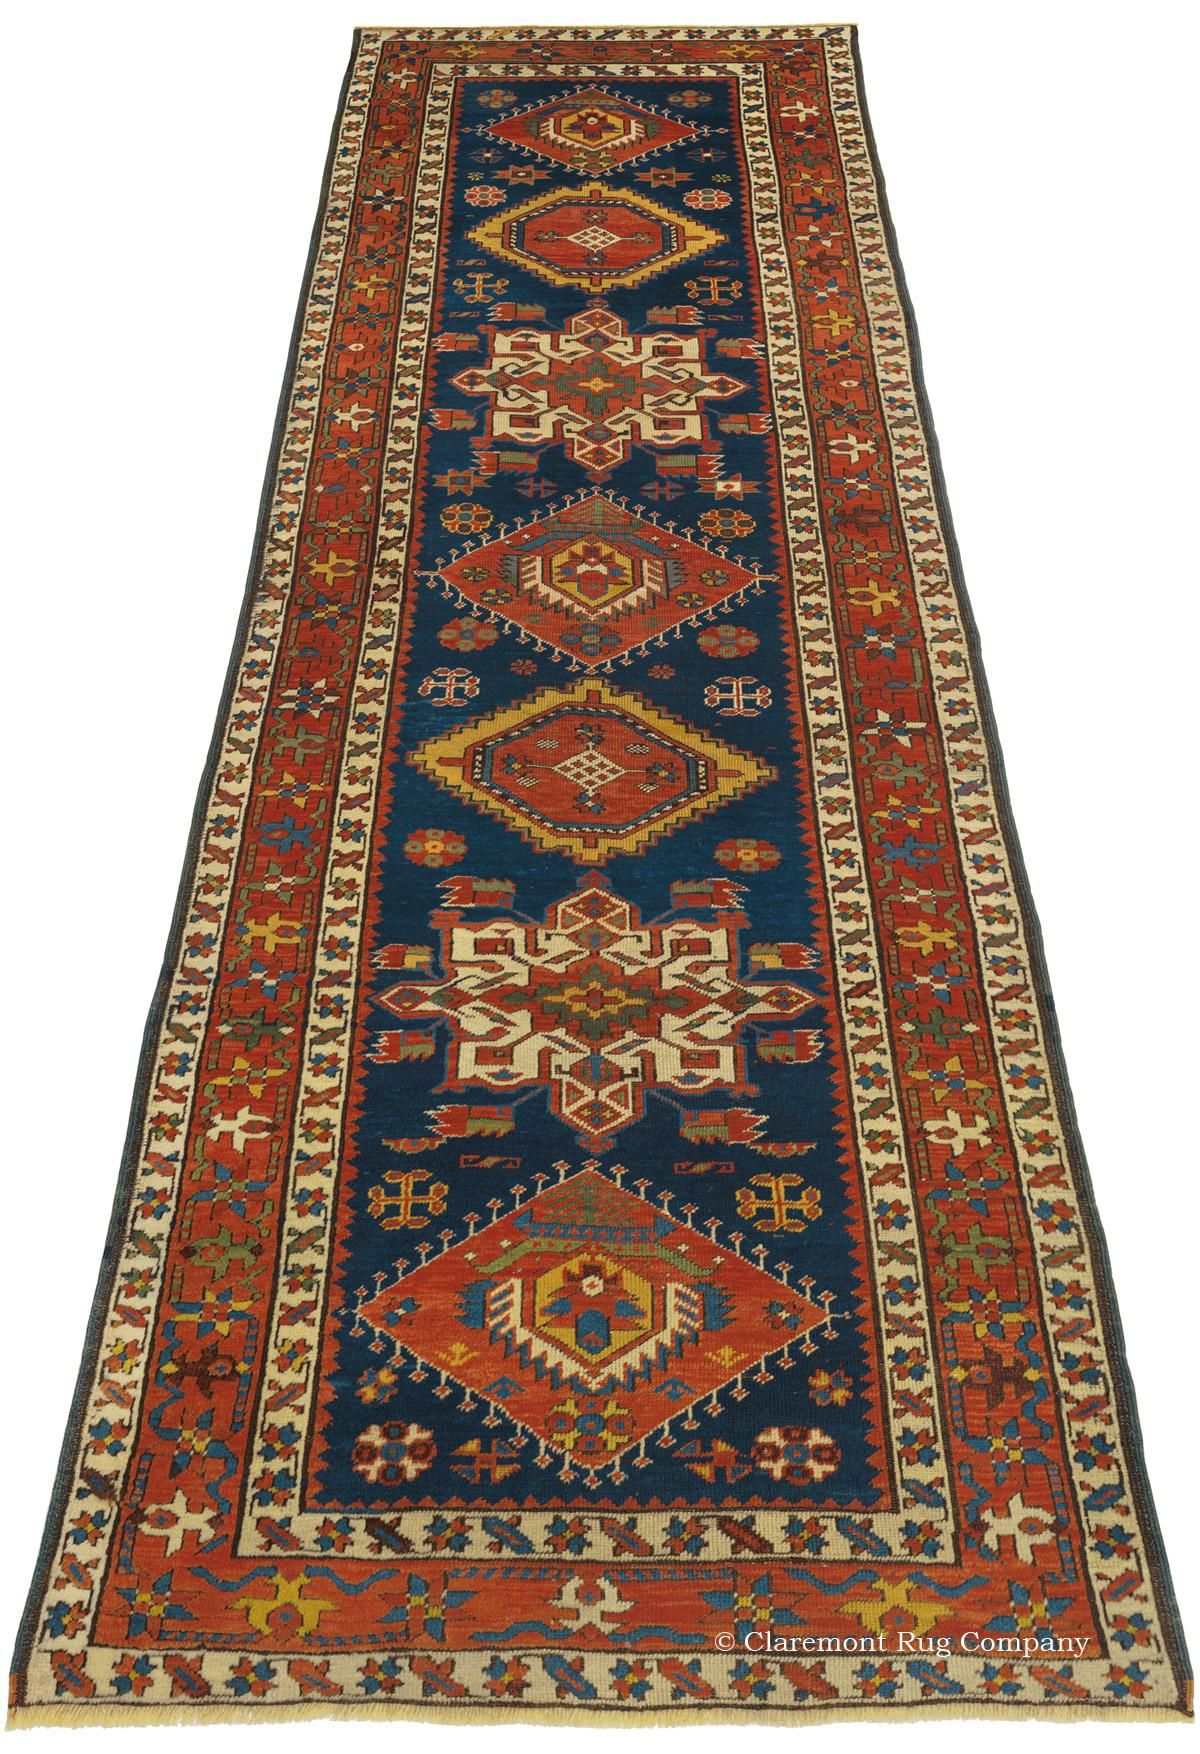 Bakshaish Northwest Persian 3ft 2in X 10ft 4in Circa 1875 Antique Persian Bakshaish Carpets In Runner Sizes Are Incredibly Rare And Halilar Kilim Desenler